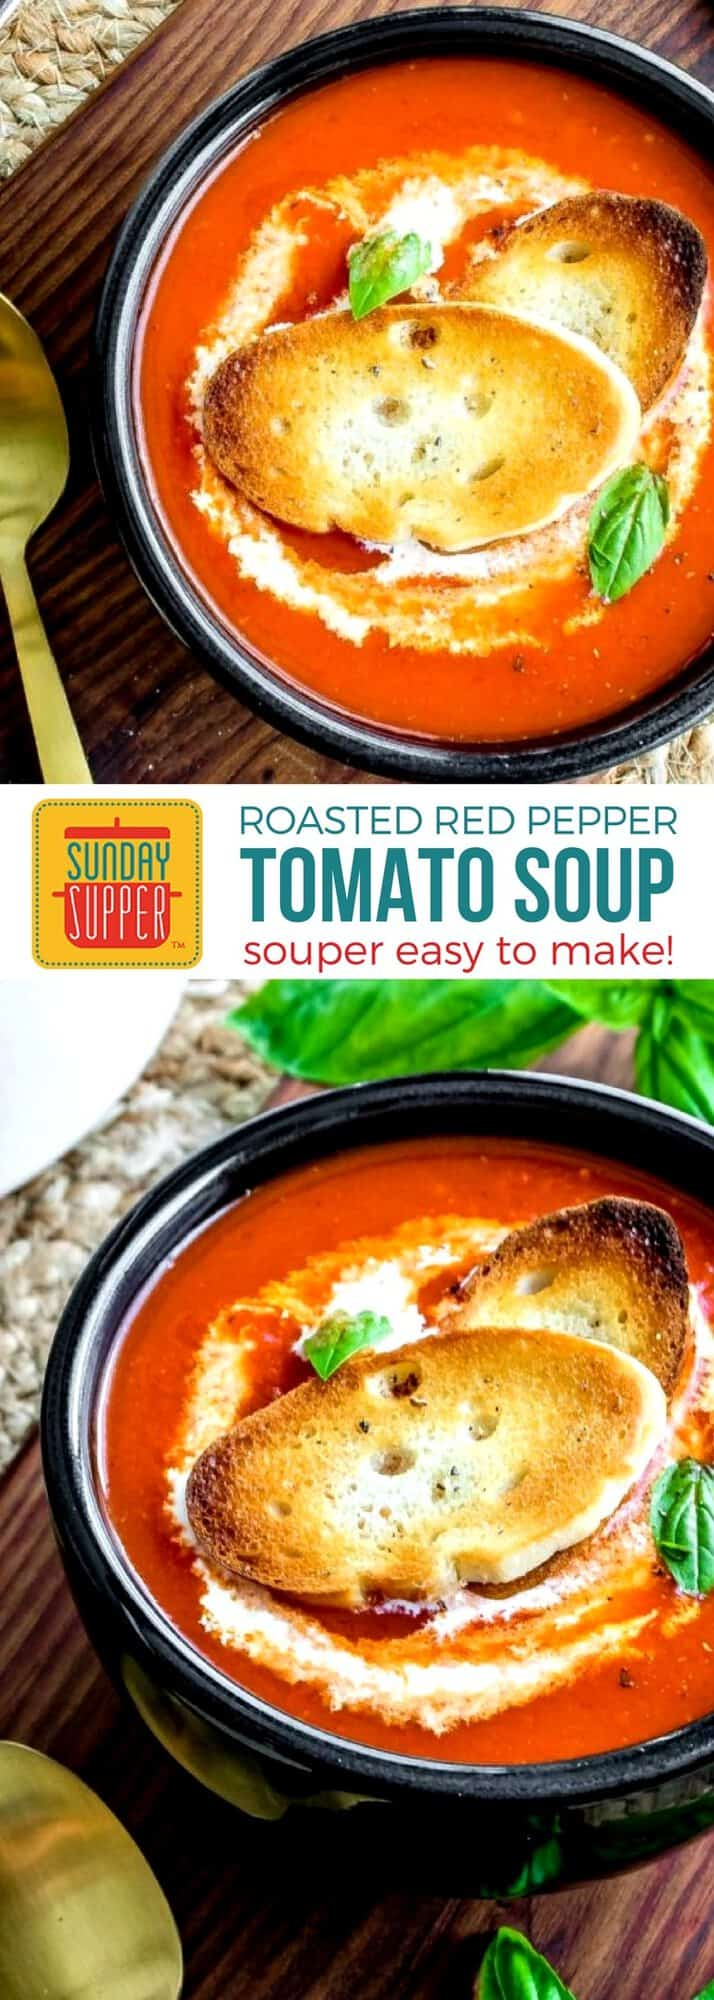 Roasted red pepper tomato soup sunday supper movement get ready for fall with our simple comfort food recipes make a big batch of forumfinder Gallery